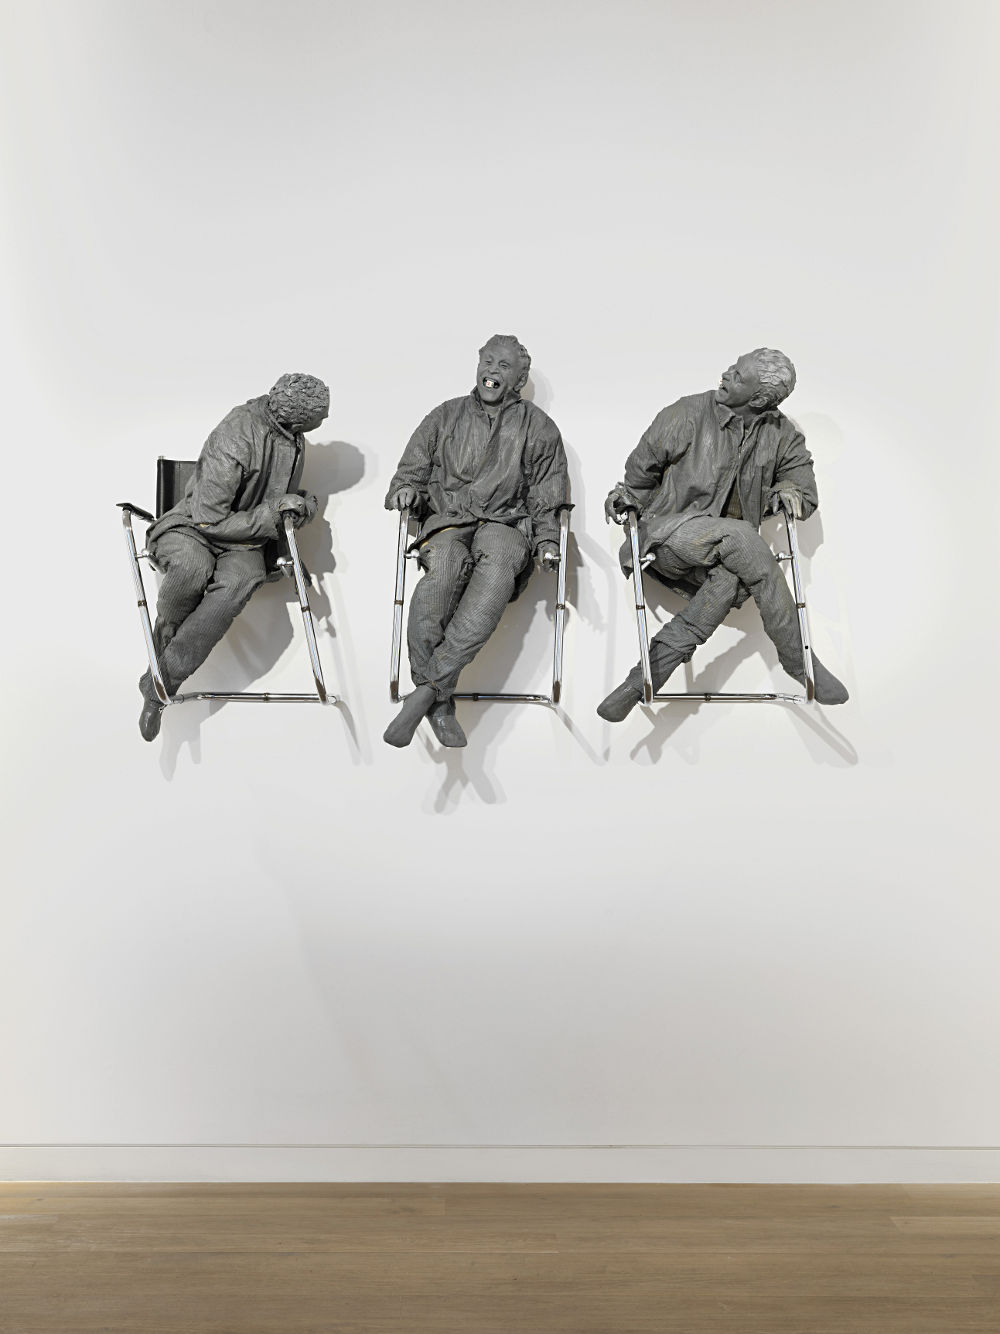 Juan Muñoz, Three Laughing at One, 2000.  Polyester resin, chairs 130 x 200 x 60 cm. (51.2 x 78.7 x 23.6 in.)